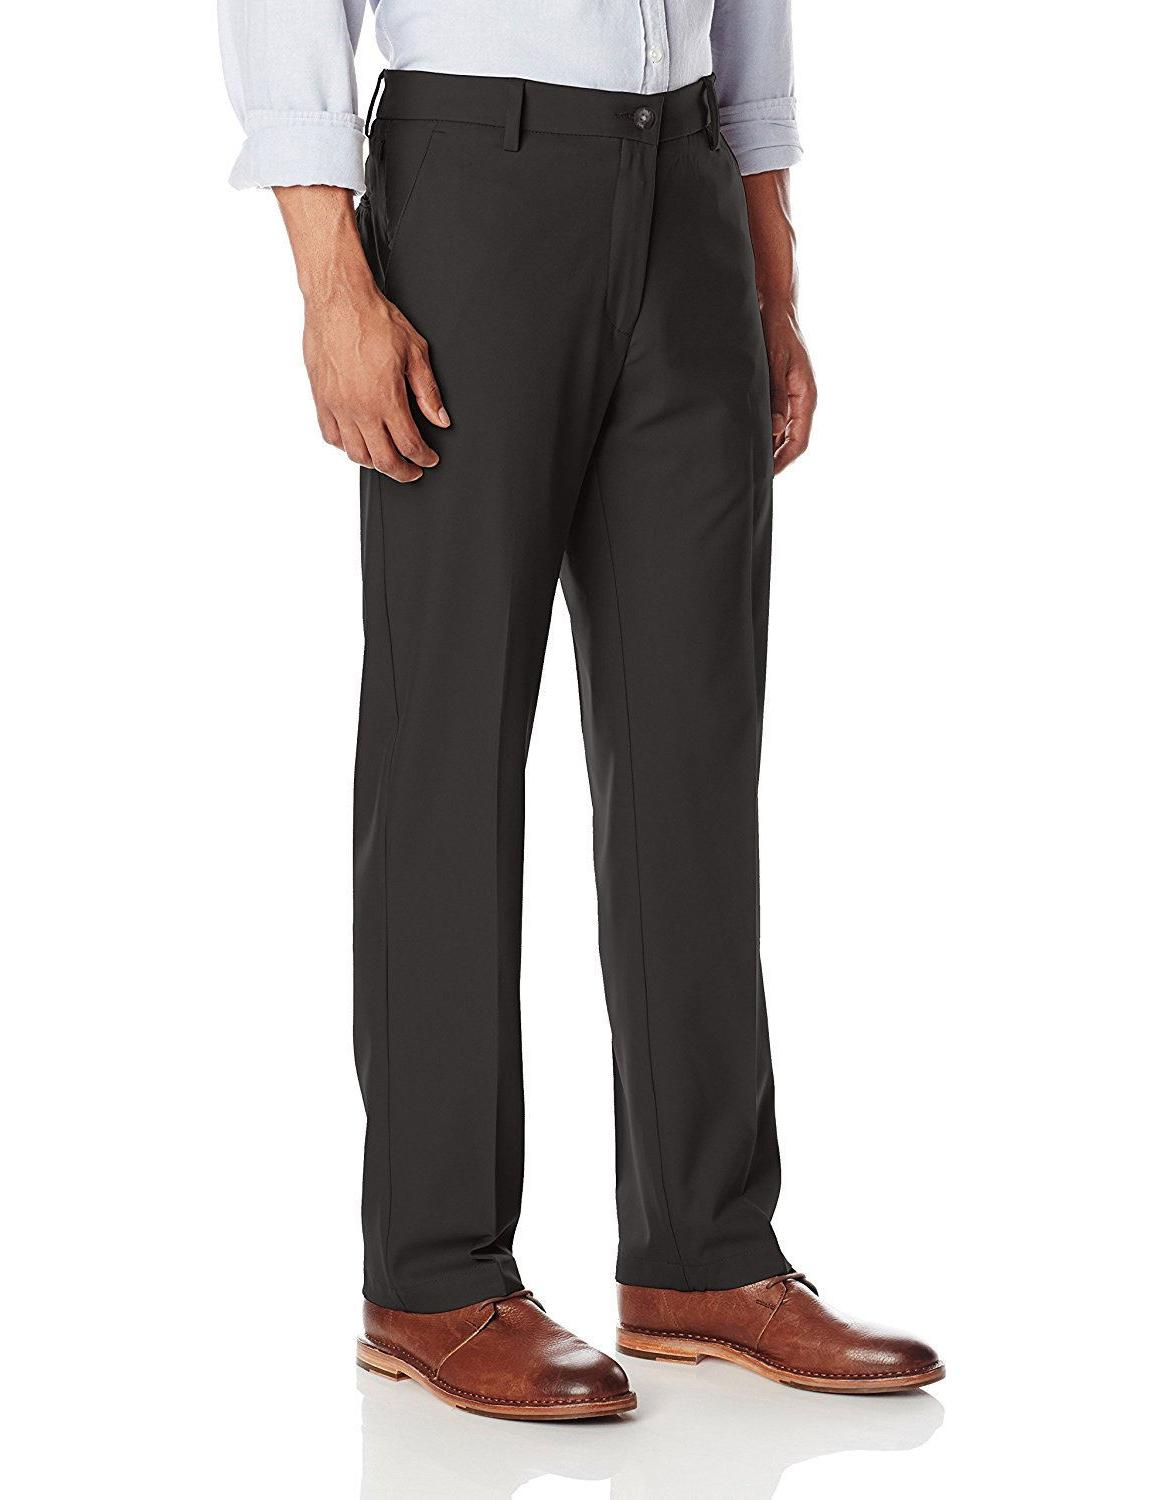 Lee Men's Performance Traveler Without